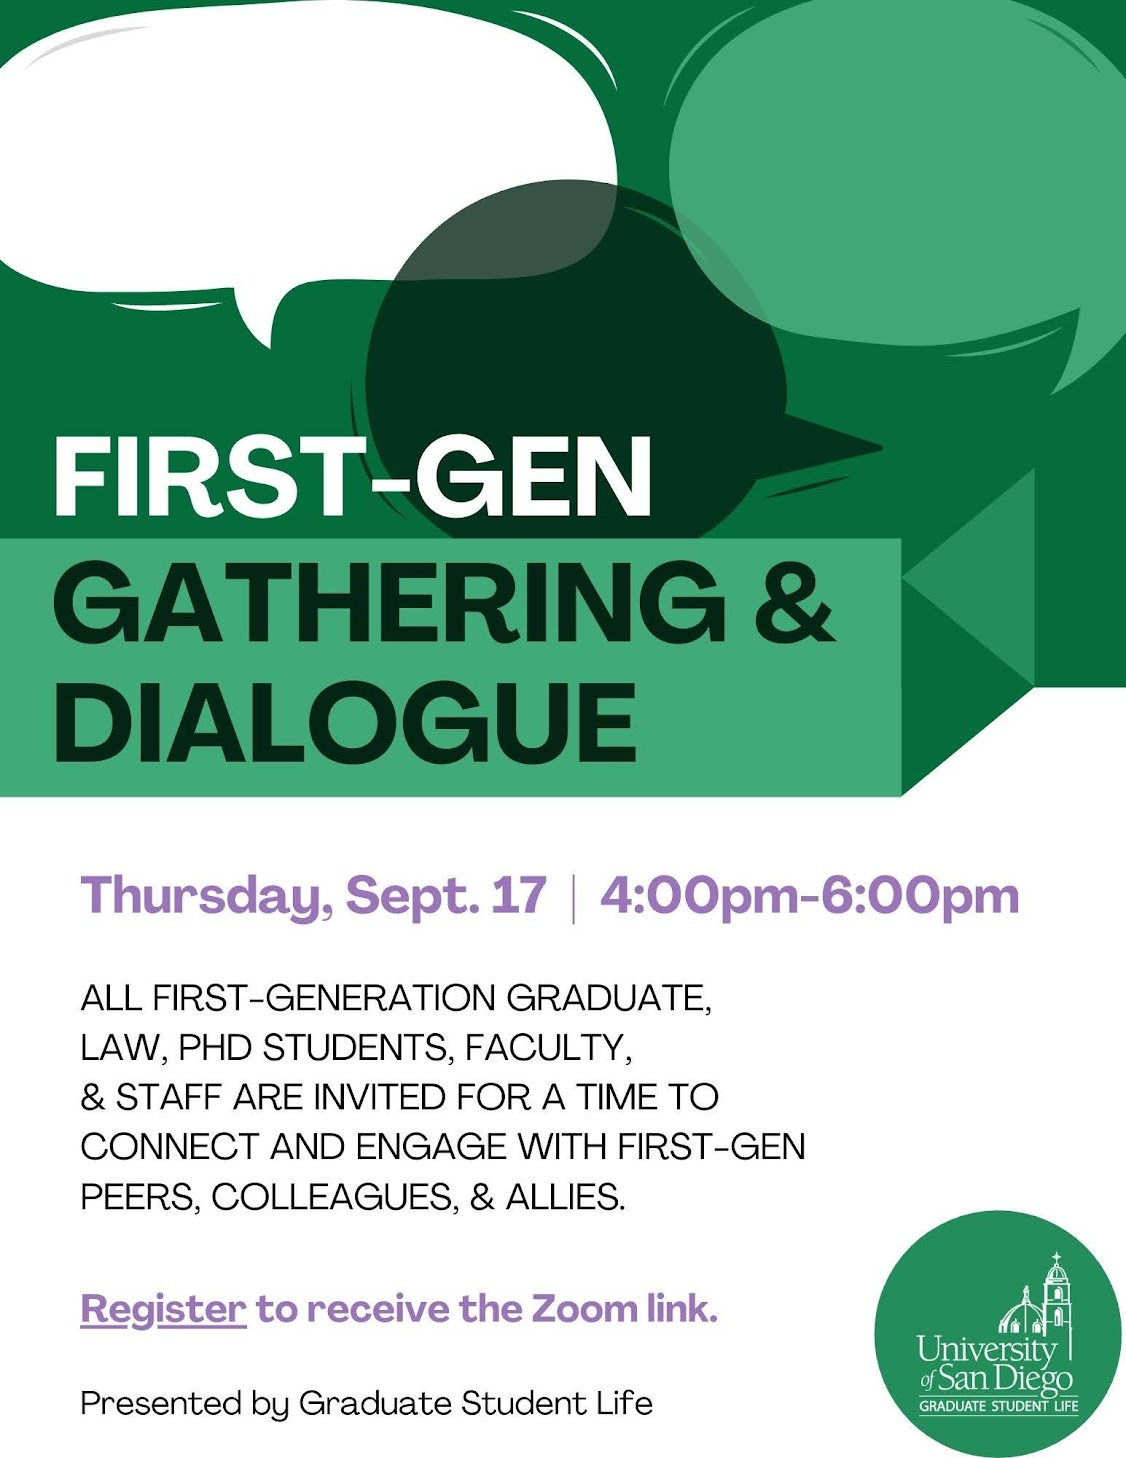 First-Gen Gathering & Dialogue, Thursday, September 17 from 4-6pm. Flyer with green speech bubbles and event information.